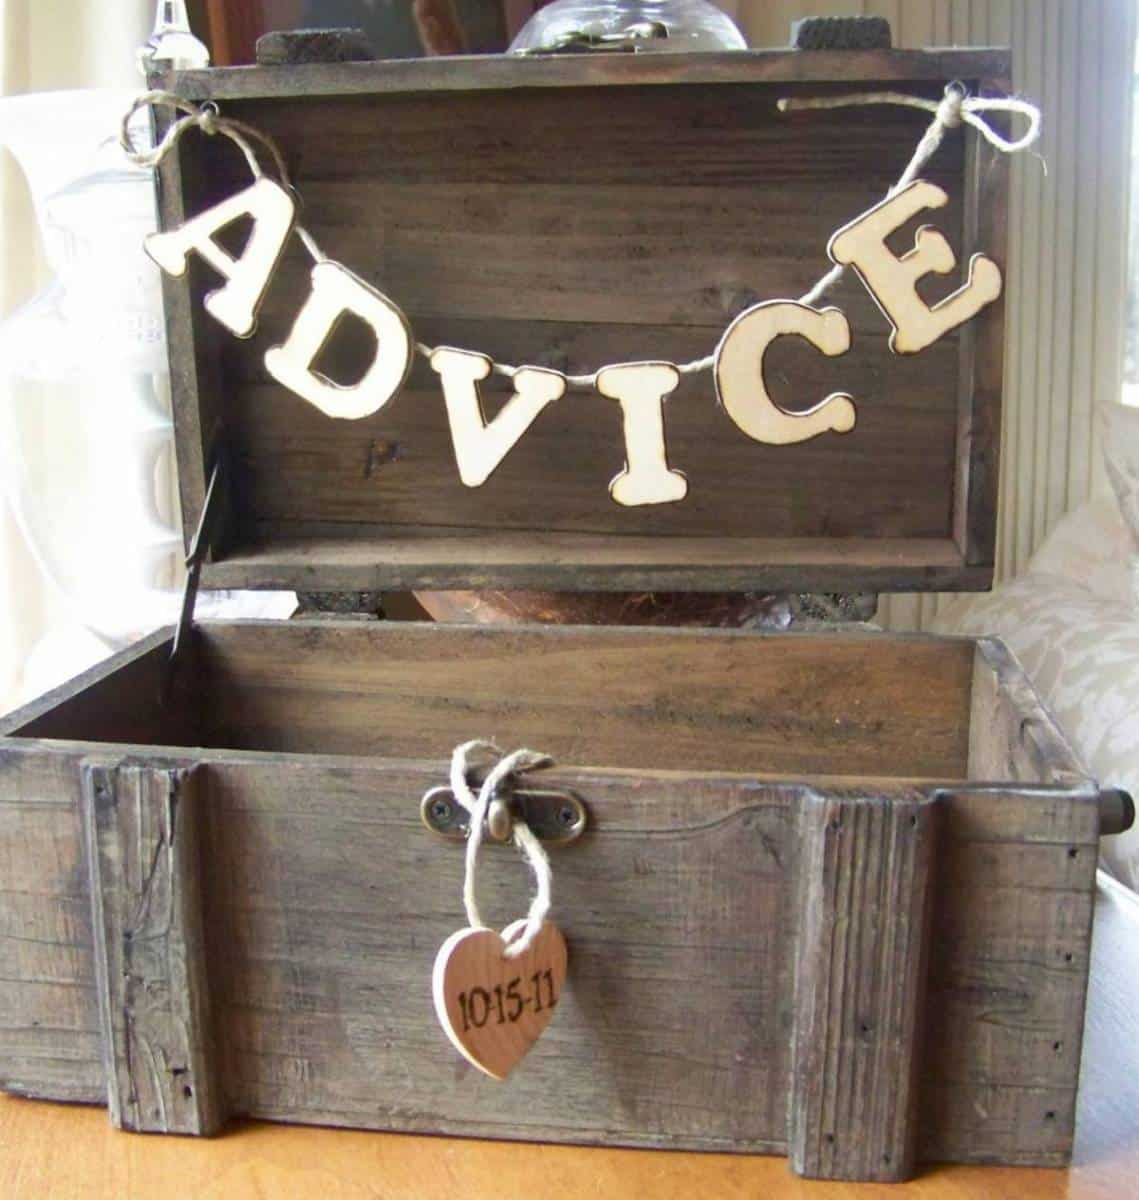 Cute Rustic D.I.Y Advice Box: Collect Pearls Of Wisdom